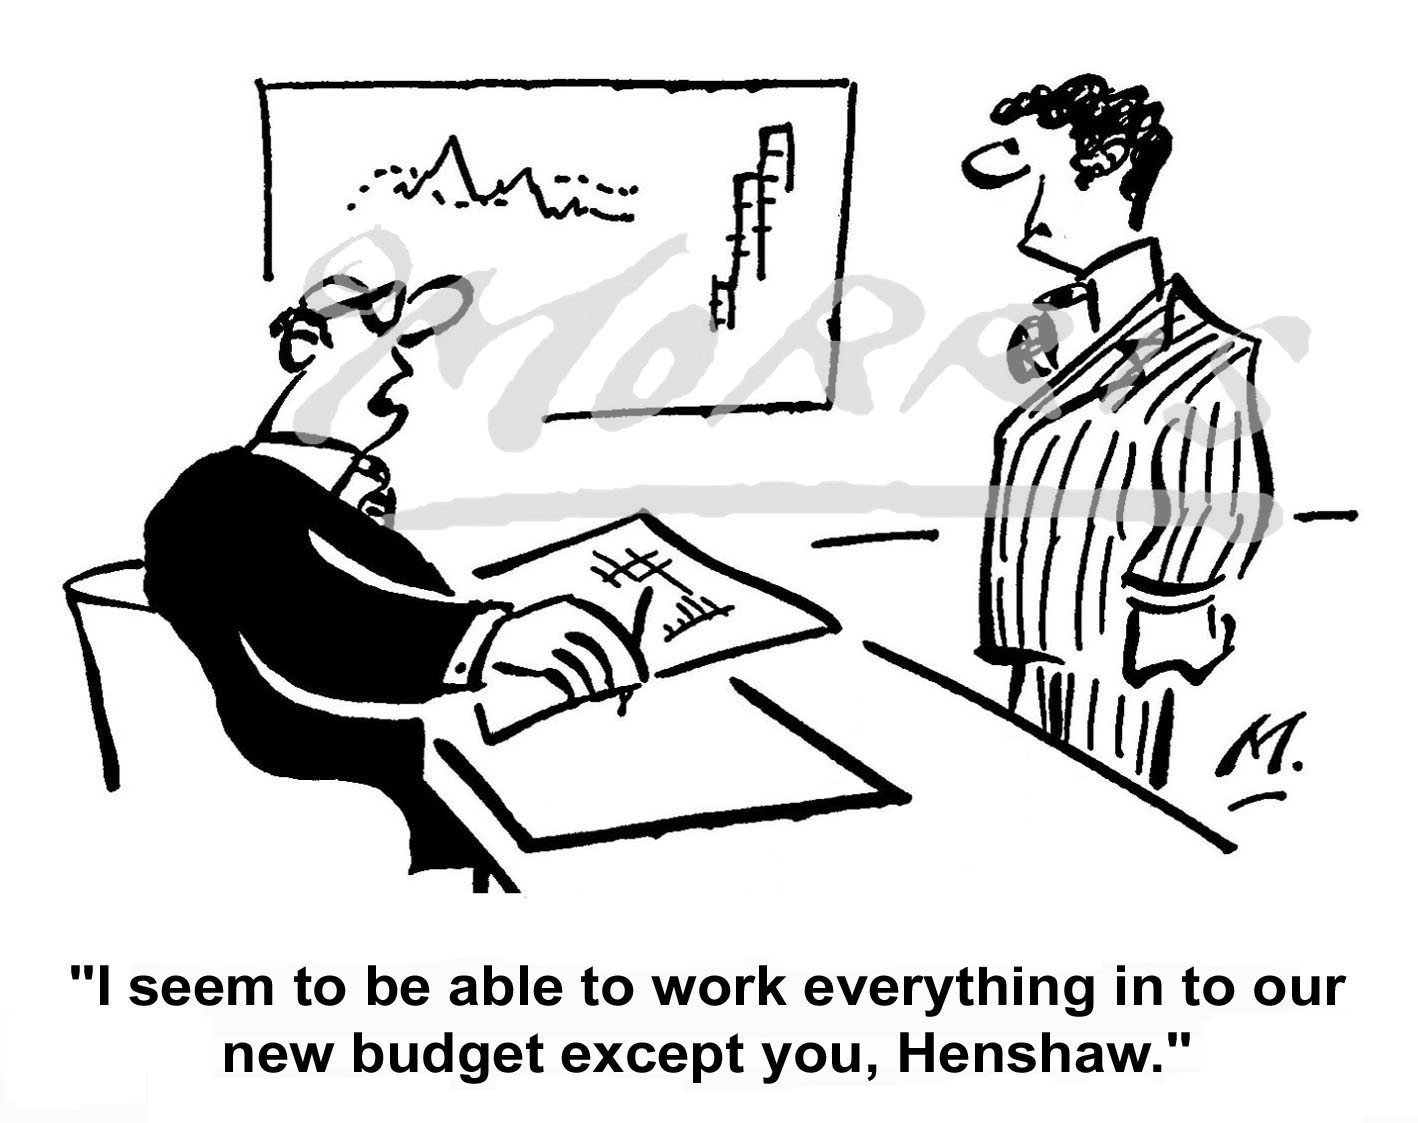 Management employee budget cartoon Ref: 0585bw